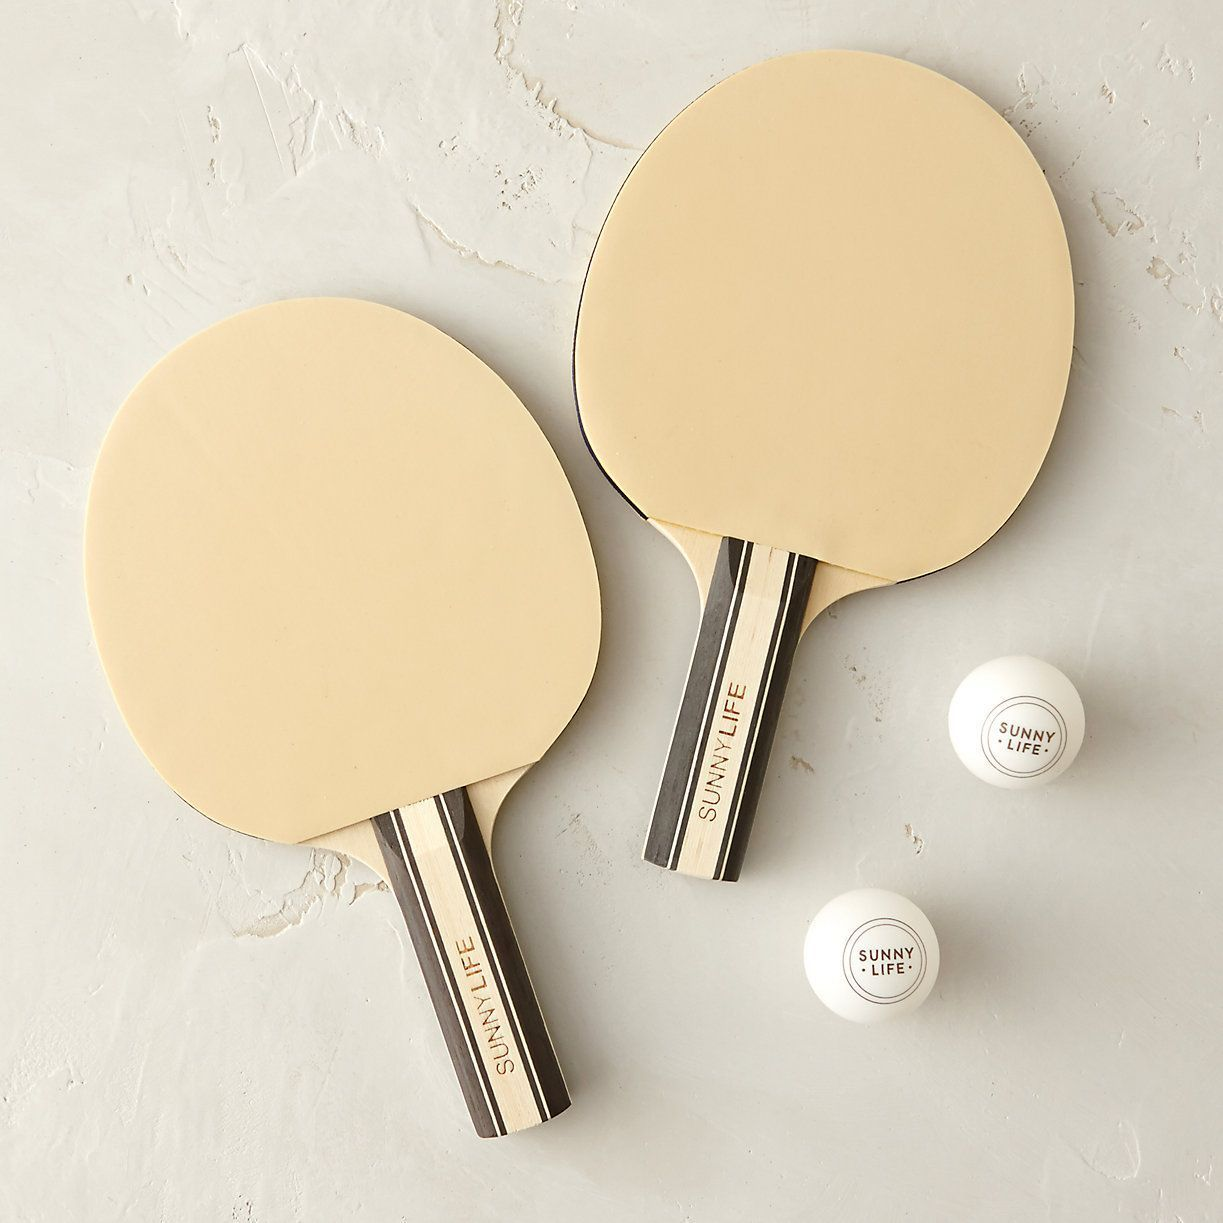 Turn any table into a ping pong court with this playful set which includes an adjustable net plus two wooden paddles and balls. & Turn any table into a ping pong court with this playful set which ...